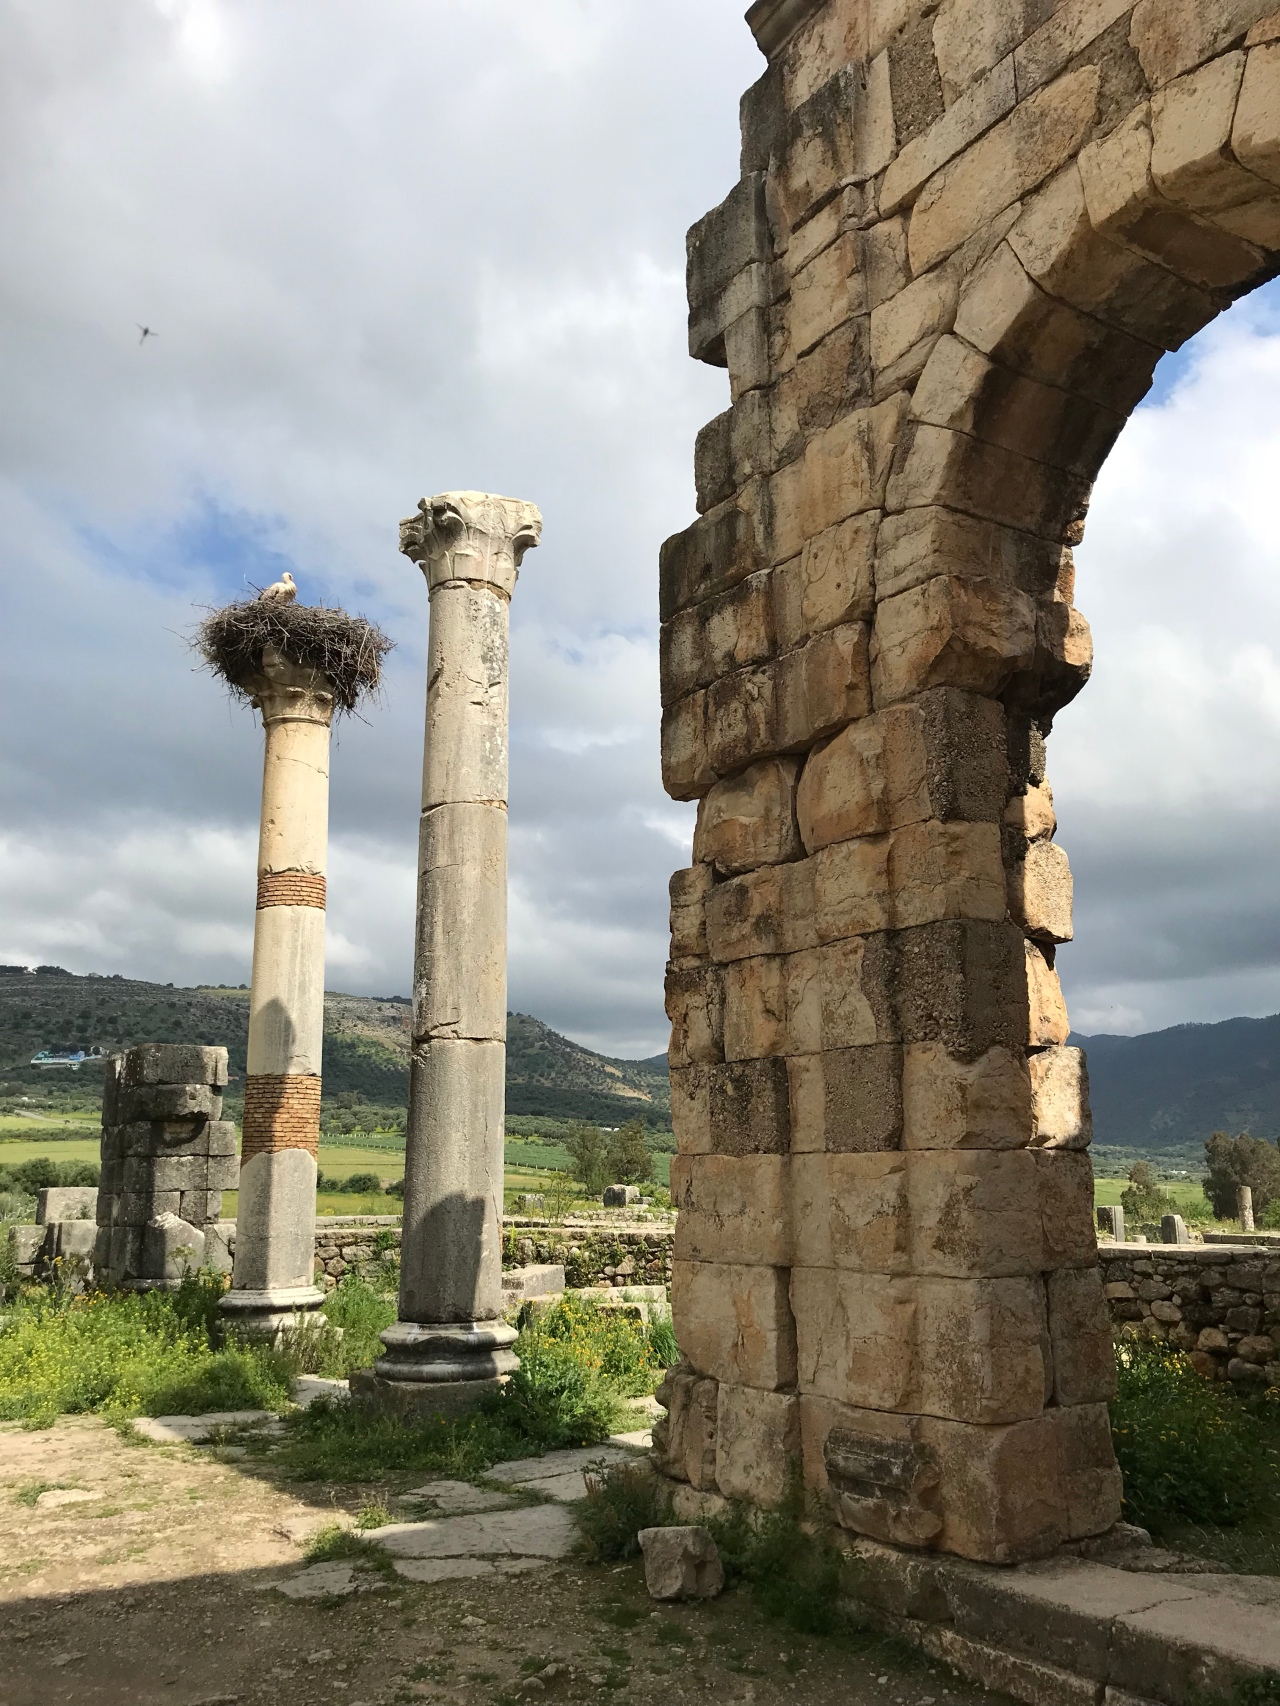 The road to Volubilis, Meknes andFes